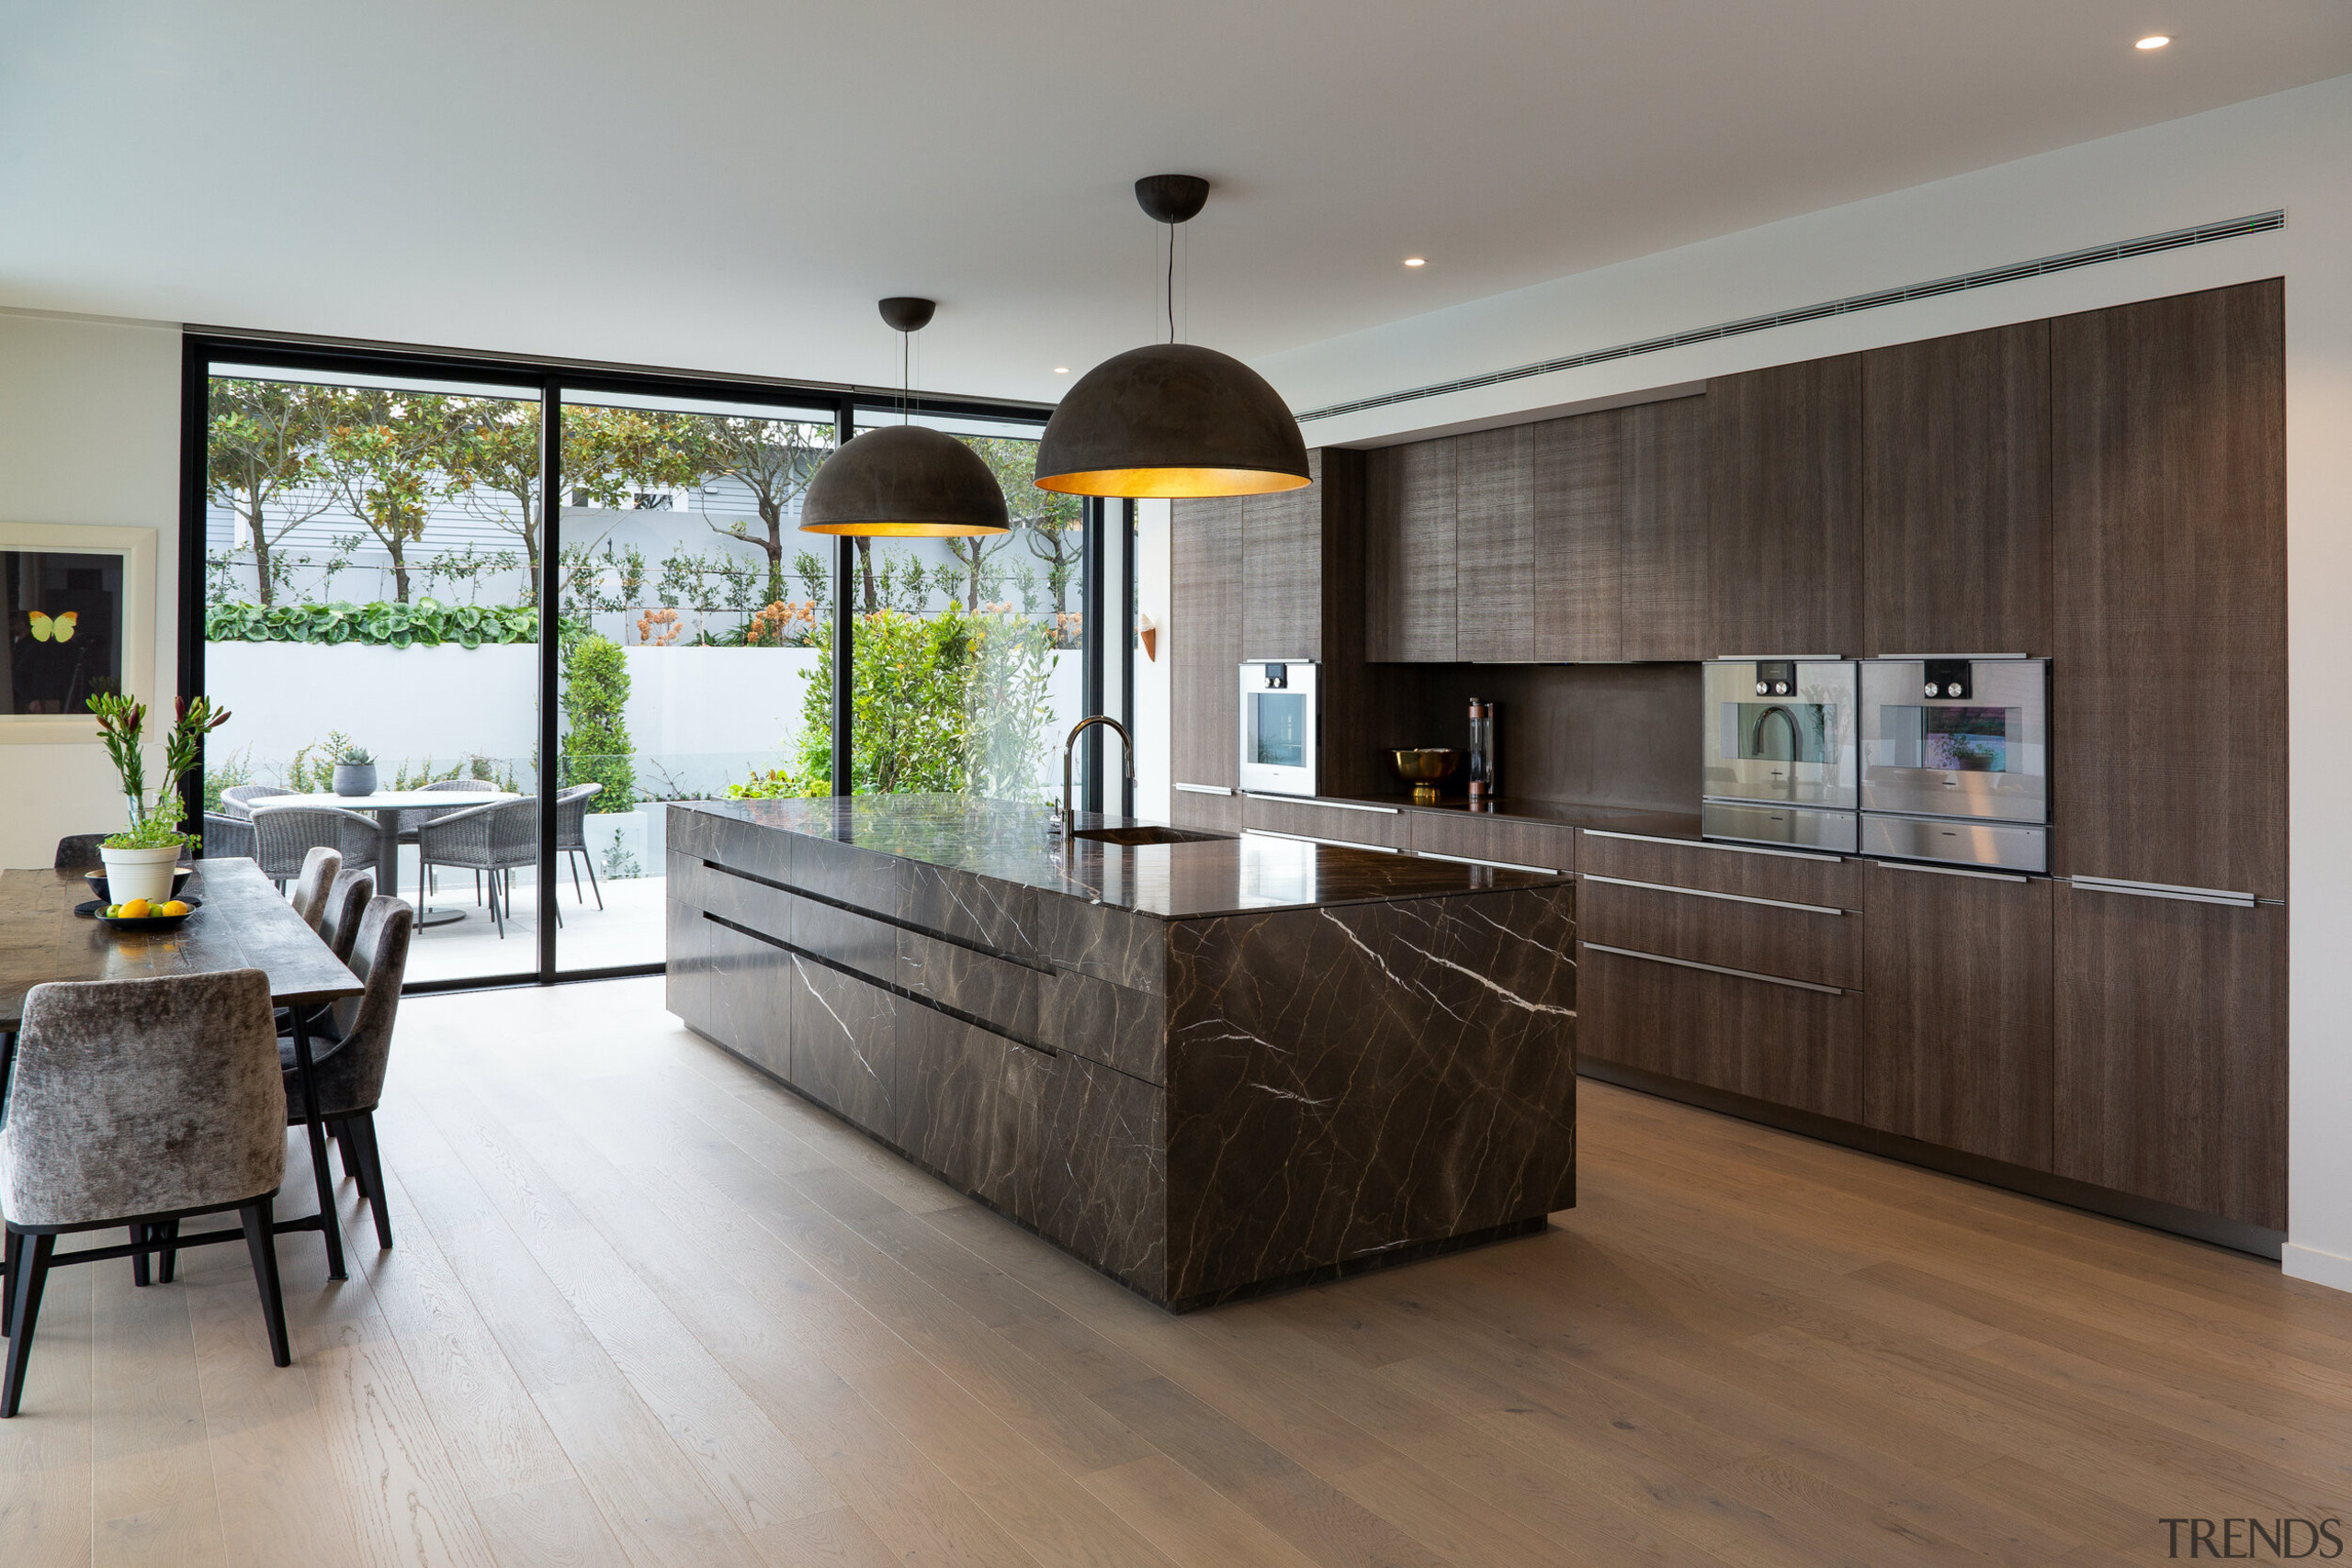 An award-winning kitchen by German Kitchens featuring a